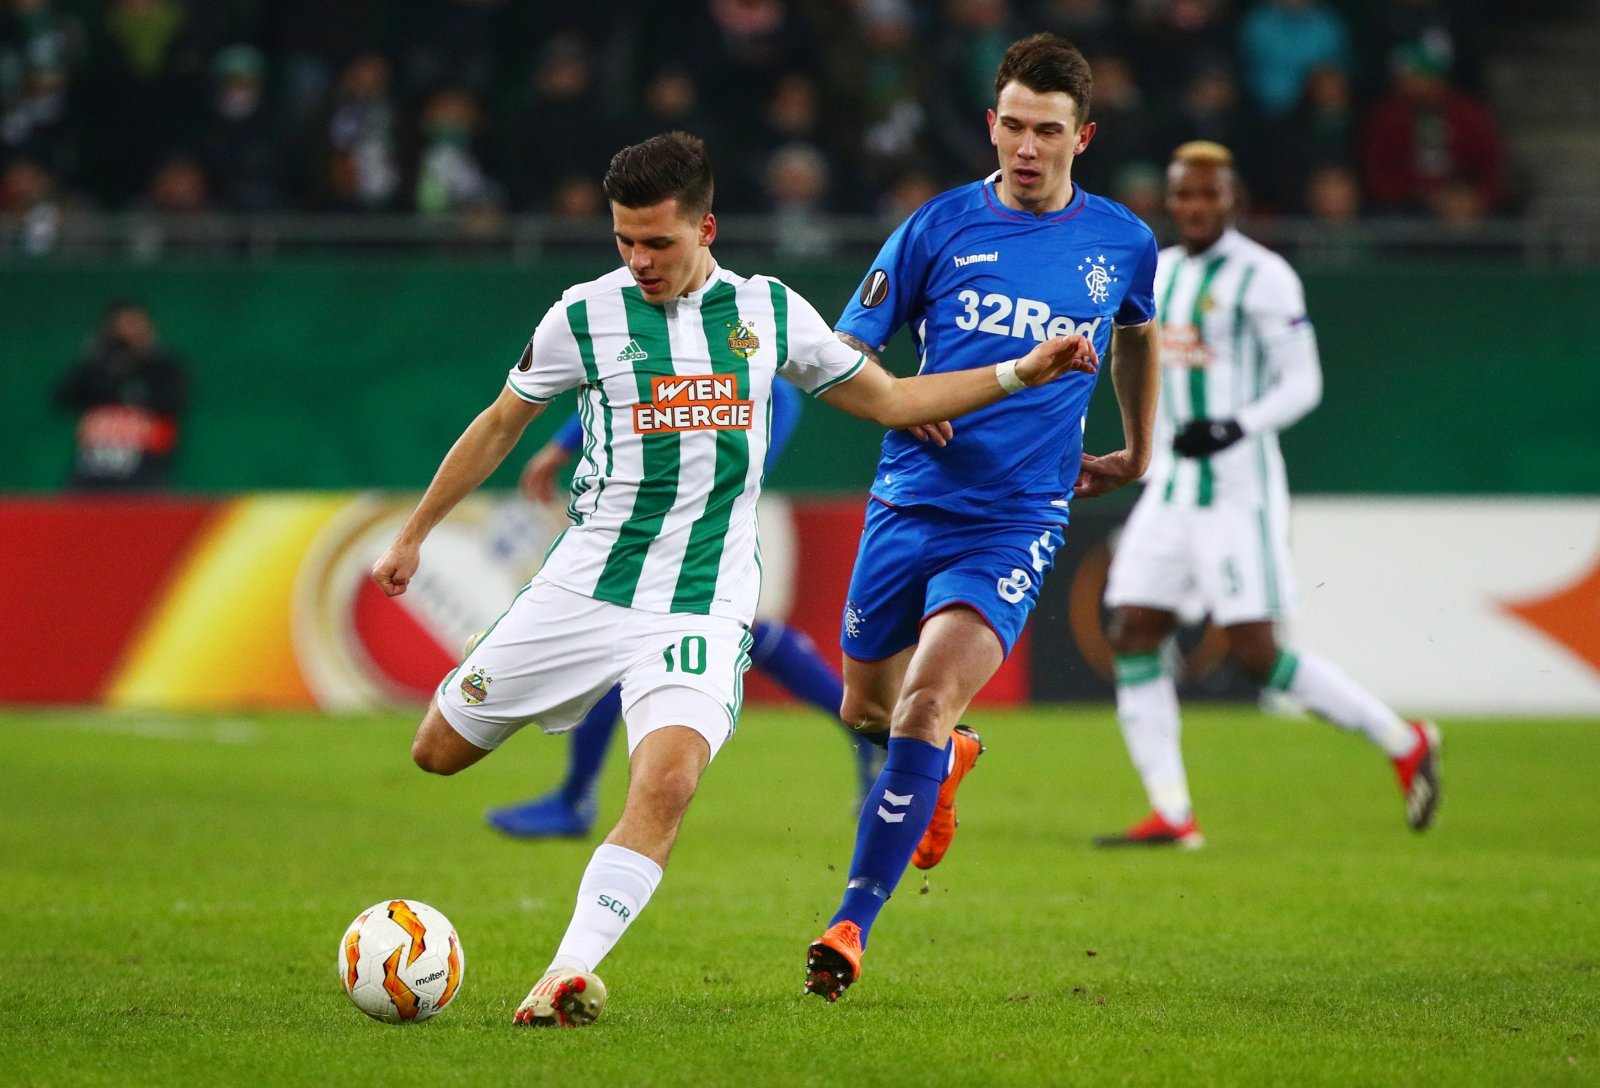 These Rangers fans were in awe of Jack Ryan's performance vs Rapid Vienna